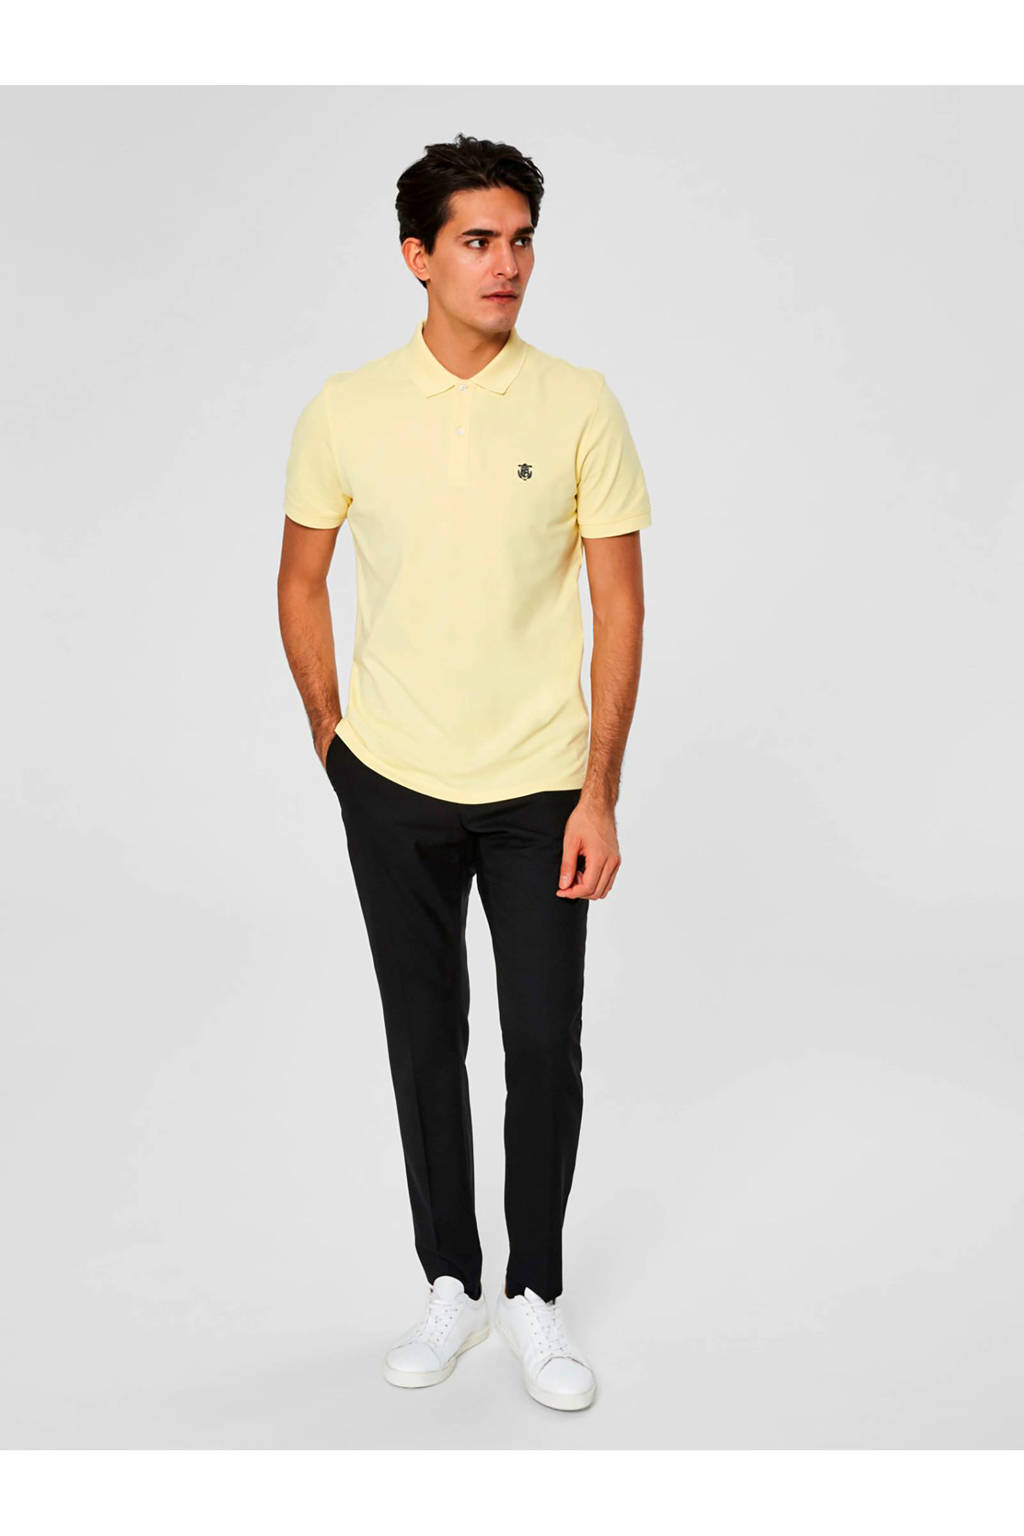 SELECTED HOMME slimfit polo licht geel, Lichtgeel